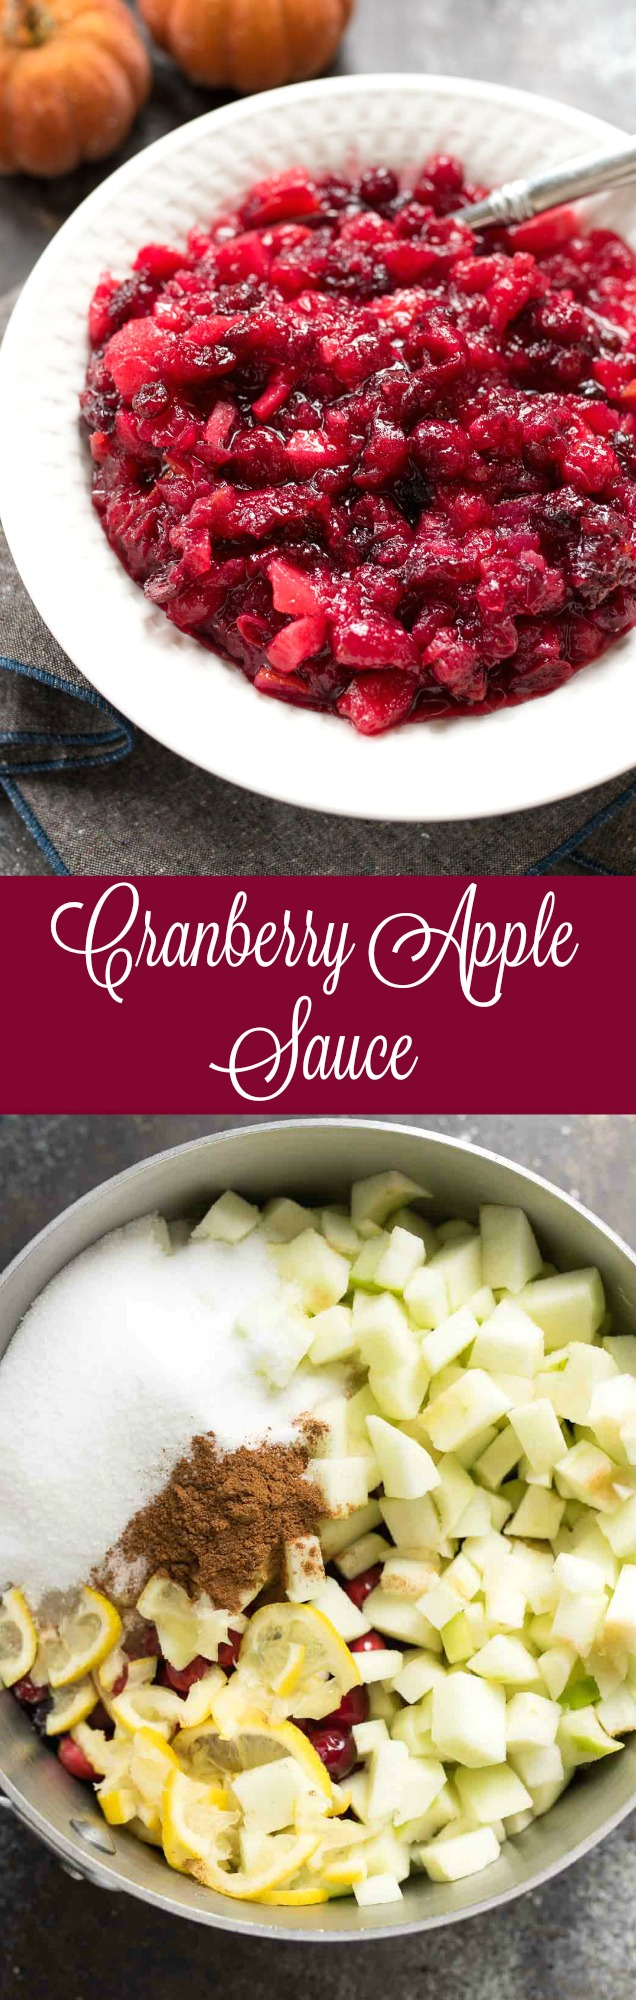 Cranberry Apple Sauce | green apples + lemon and cinnamon make this the perfect cranberry sauce for your Holiday spread. Naturally gluten free! | www.nutritiouseats.com